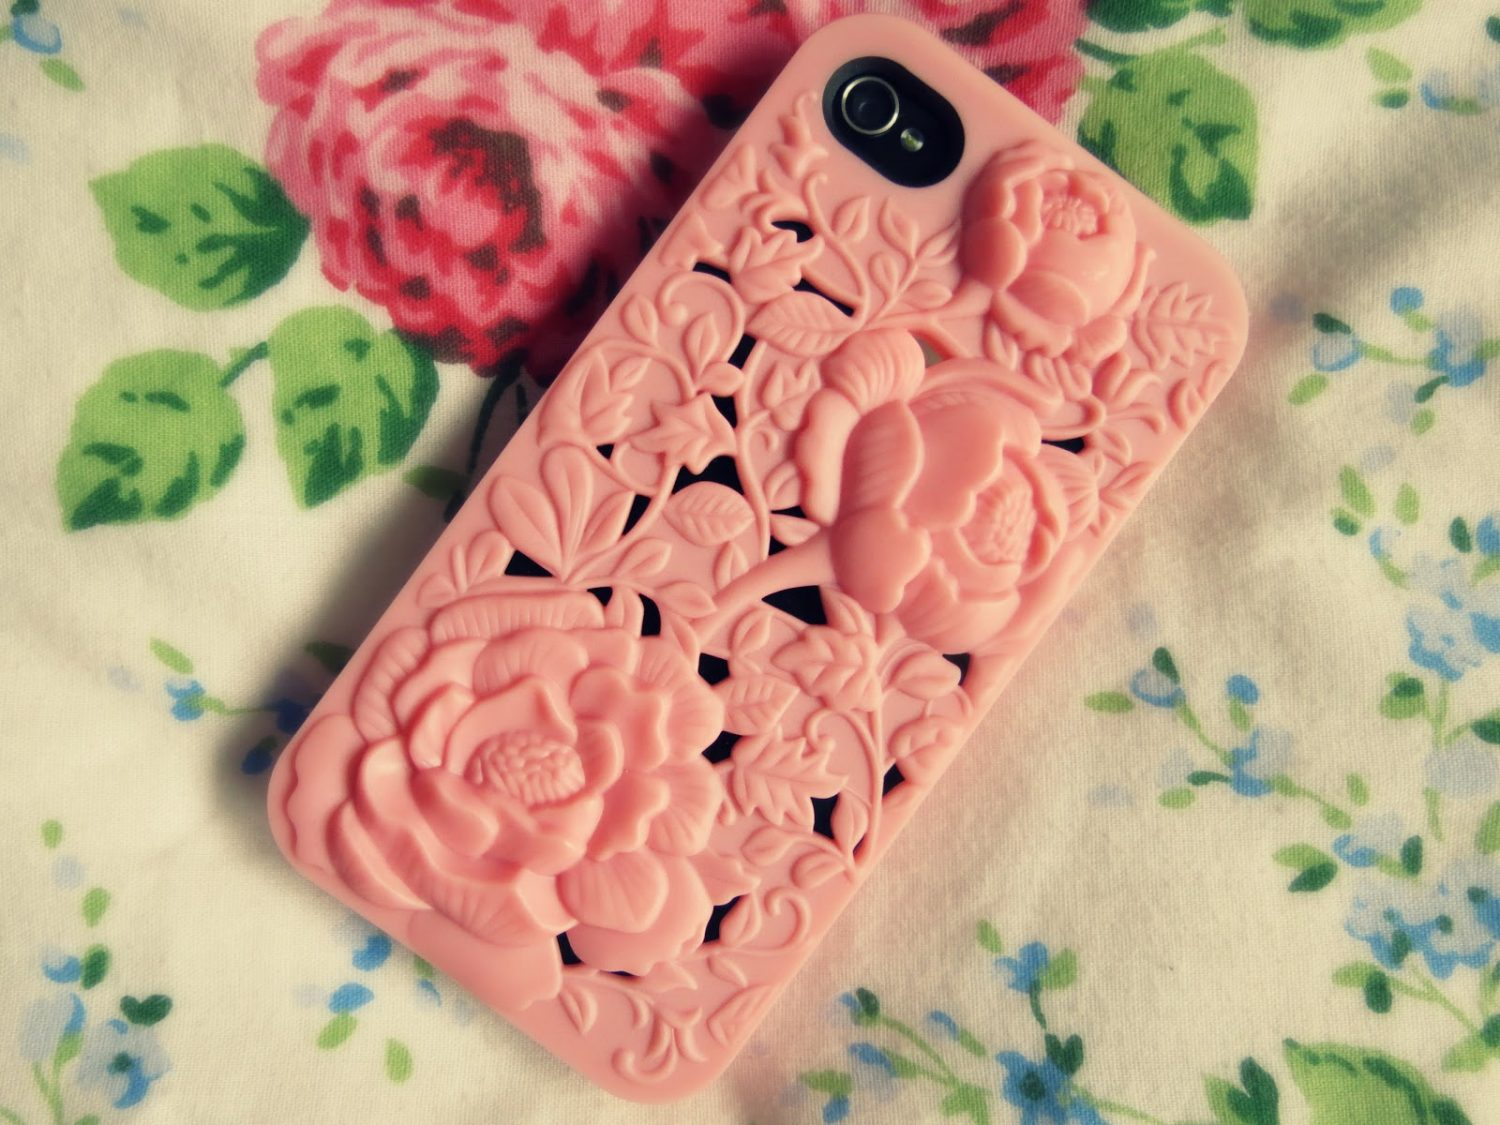 ... 4s cases for girls otterbox iphone 4s cases for girls bow iphone 4s